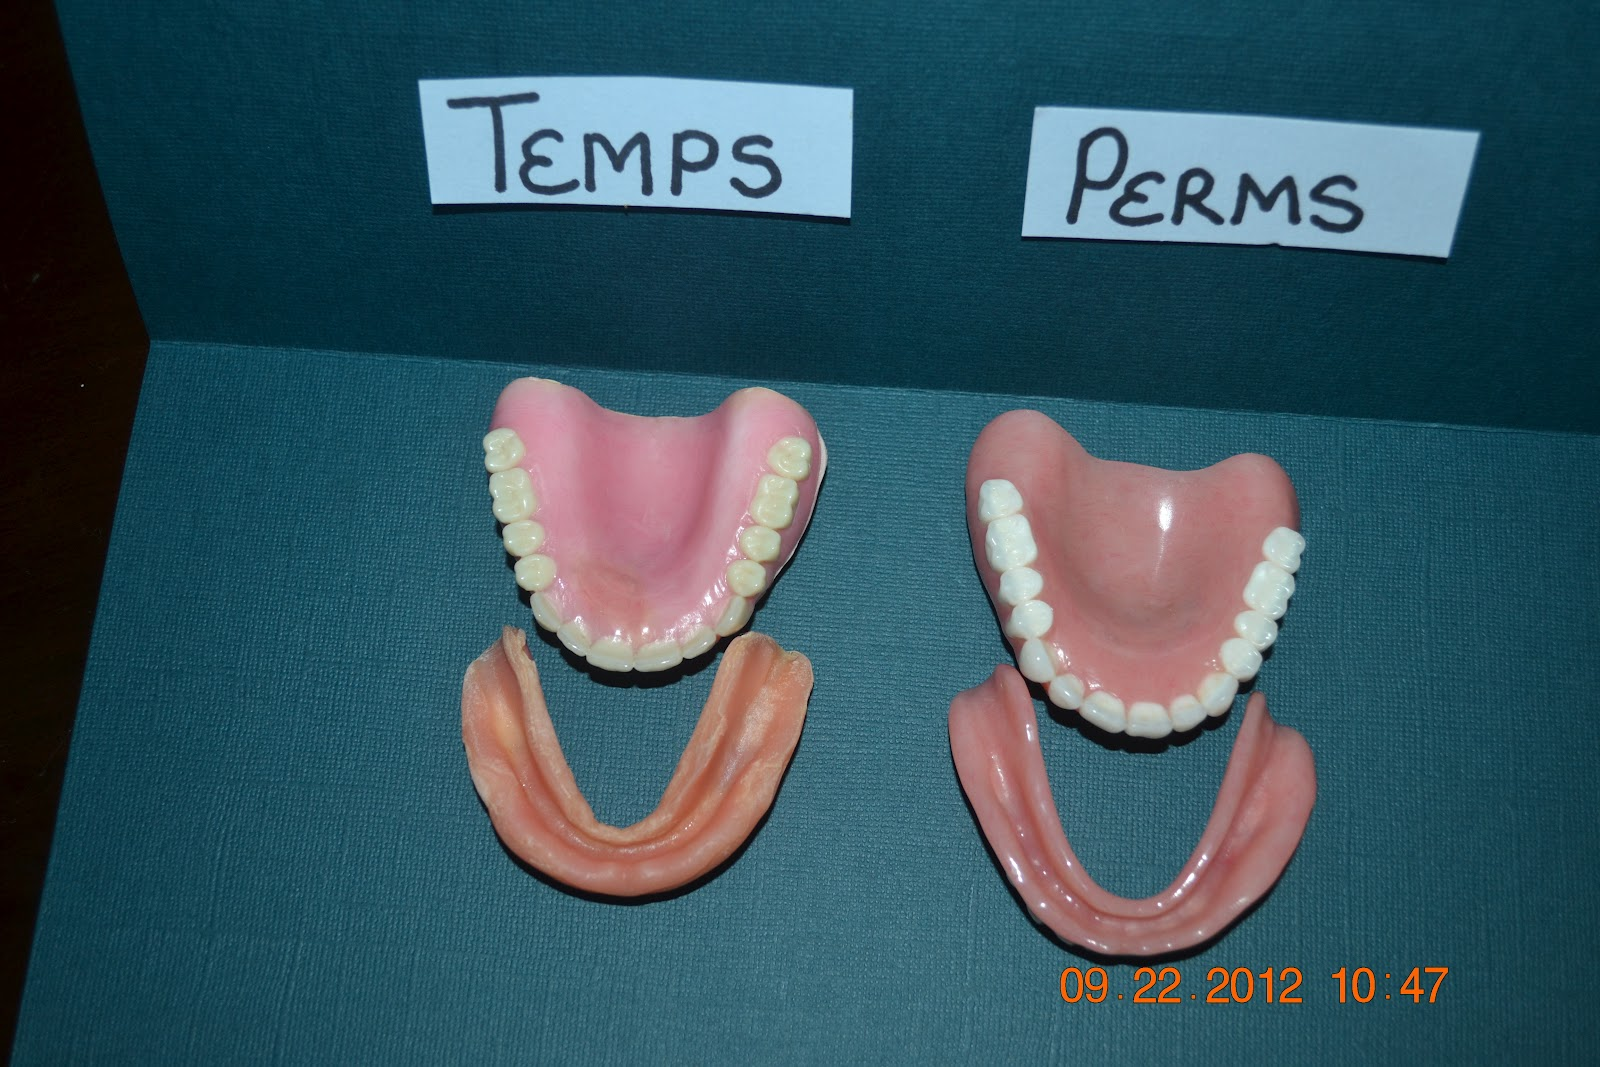 Temporary vs permanent dentures iweardentures temporary vs permanent dentures solutioingenieria Image collections